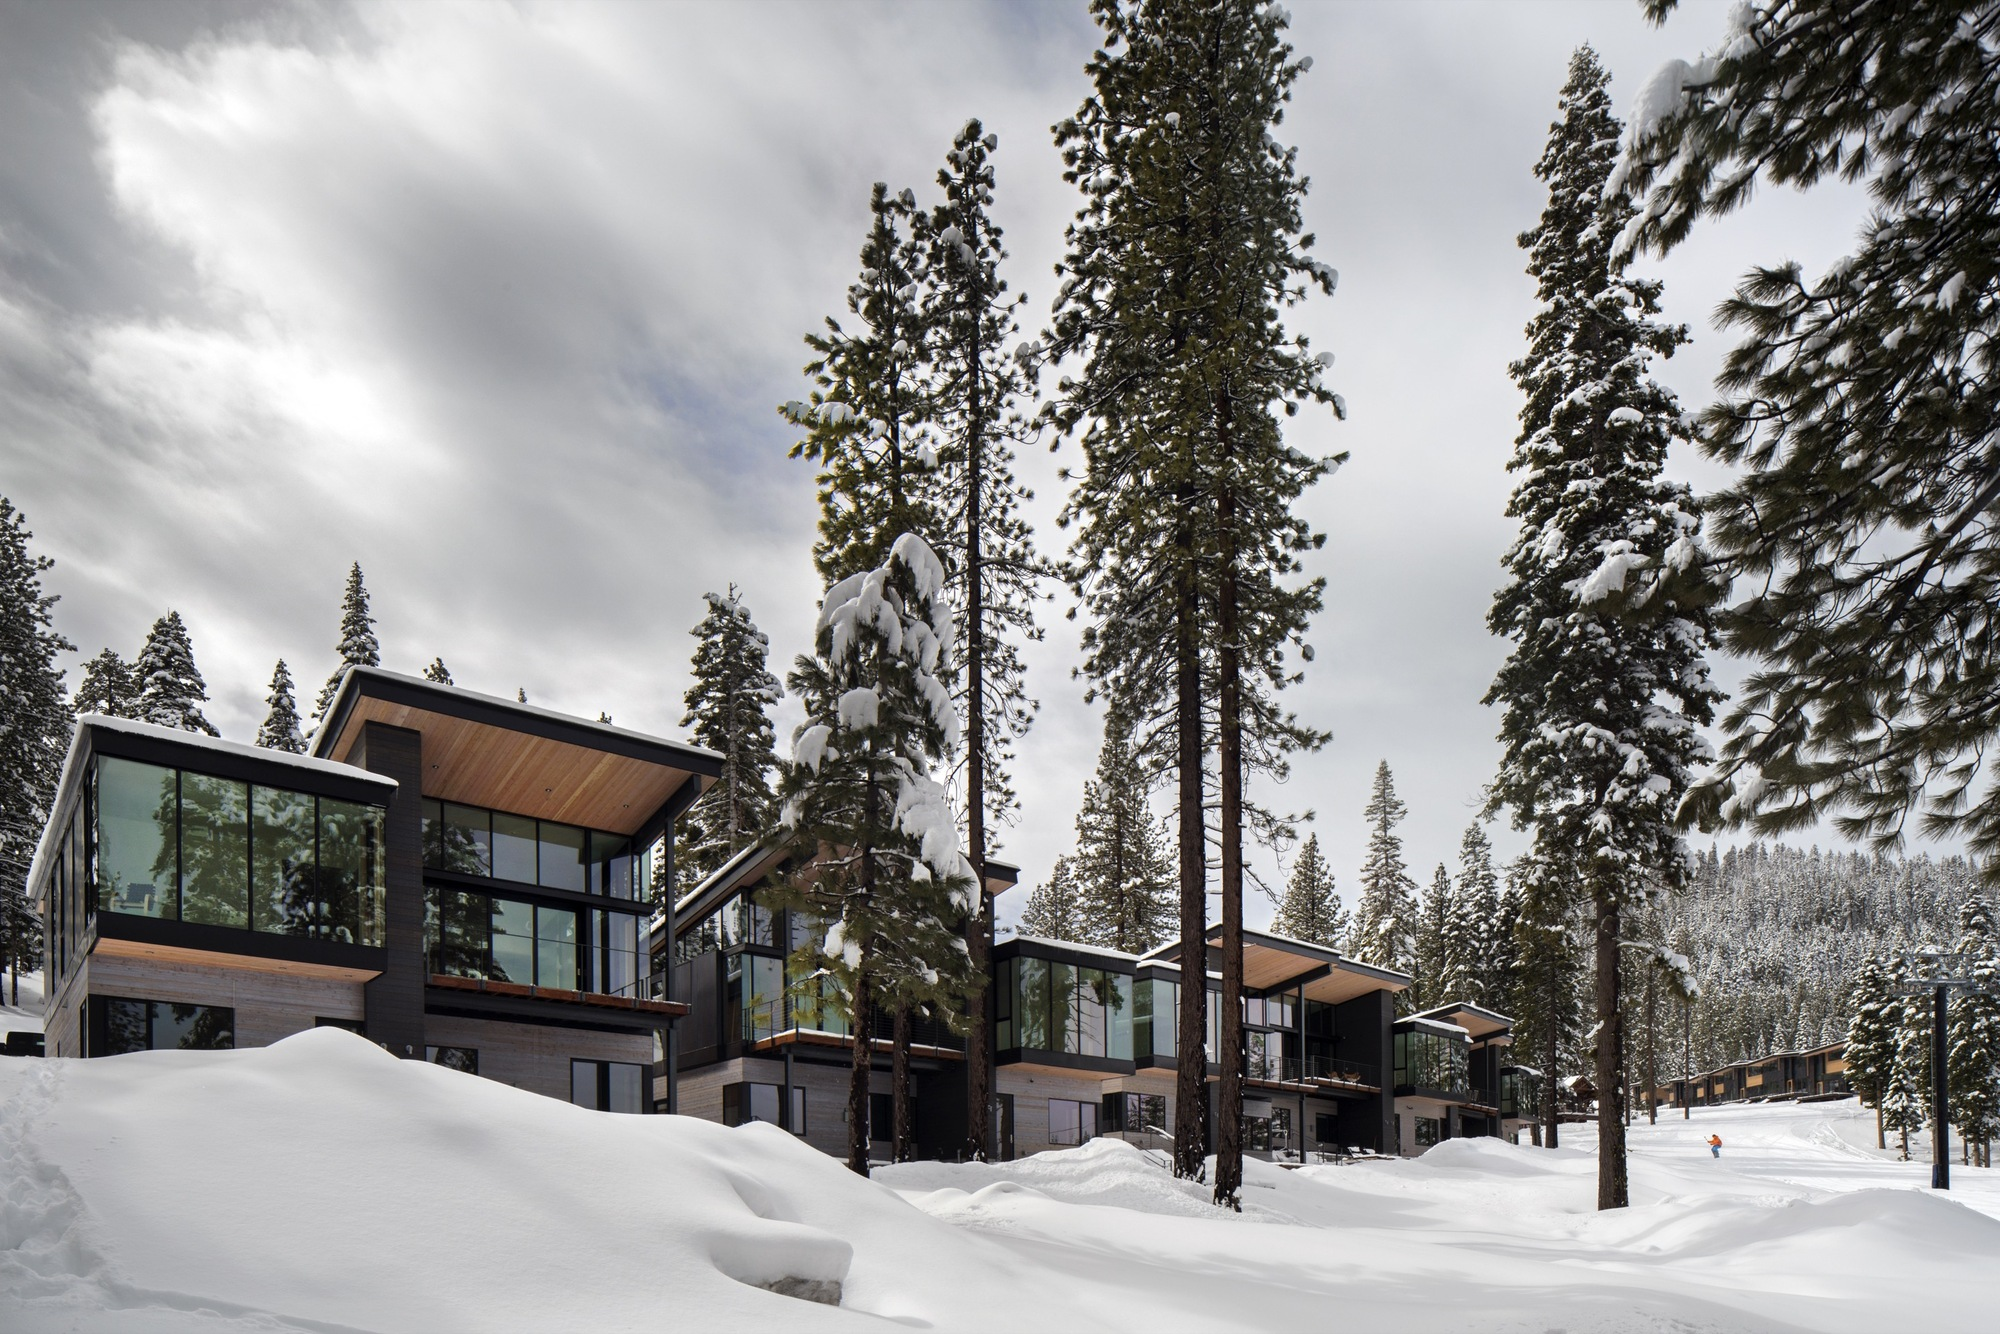 The 10 Best Residential Architecture Projects In the United States architecture projects The 10 Best Residential Architecture Projects In the United States The 10 Best House Design Projects In the United States Stellar Residences